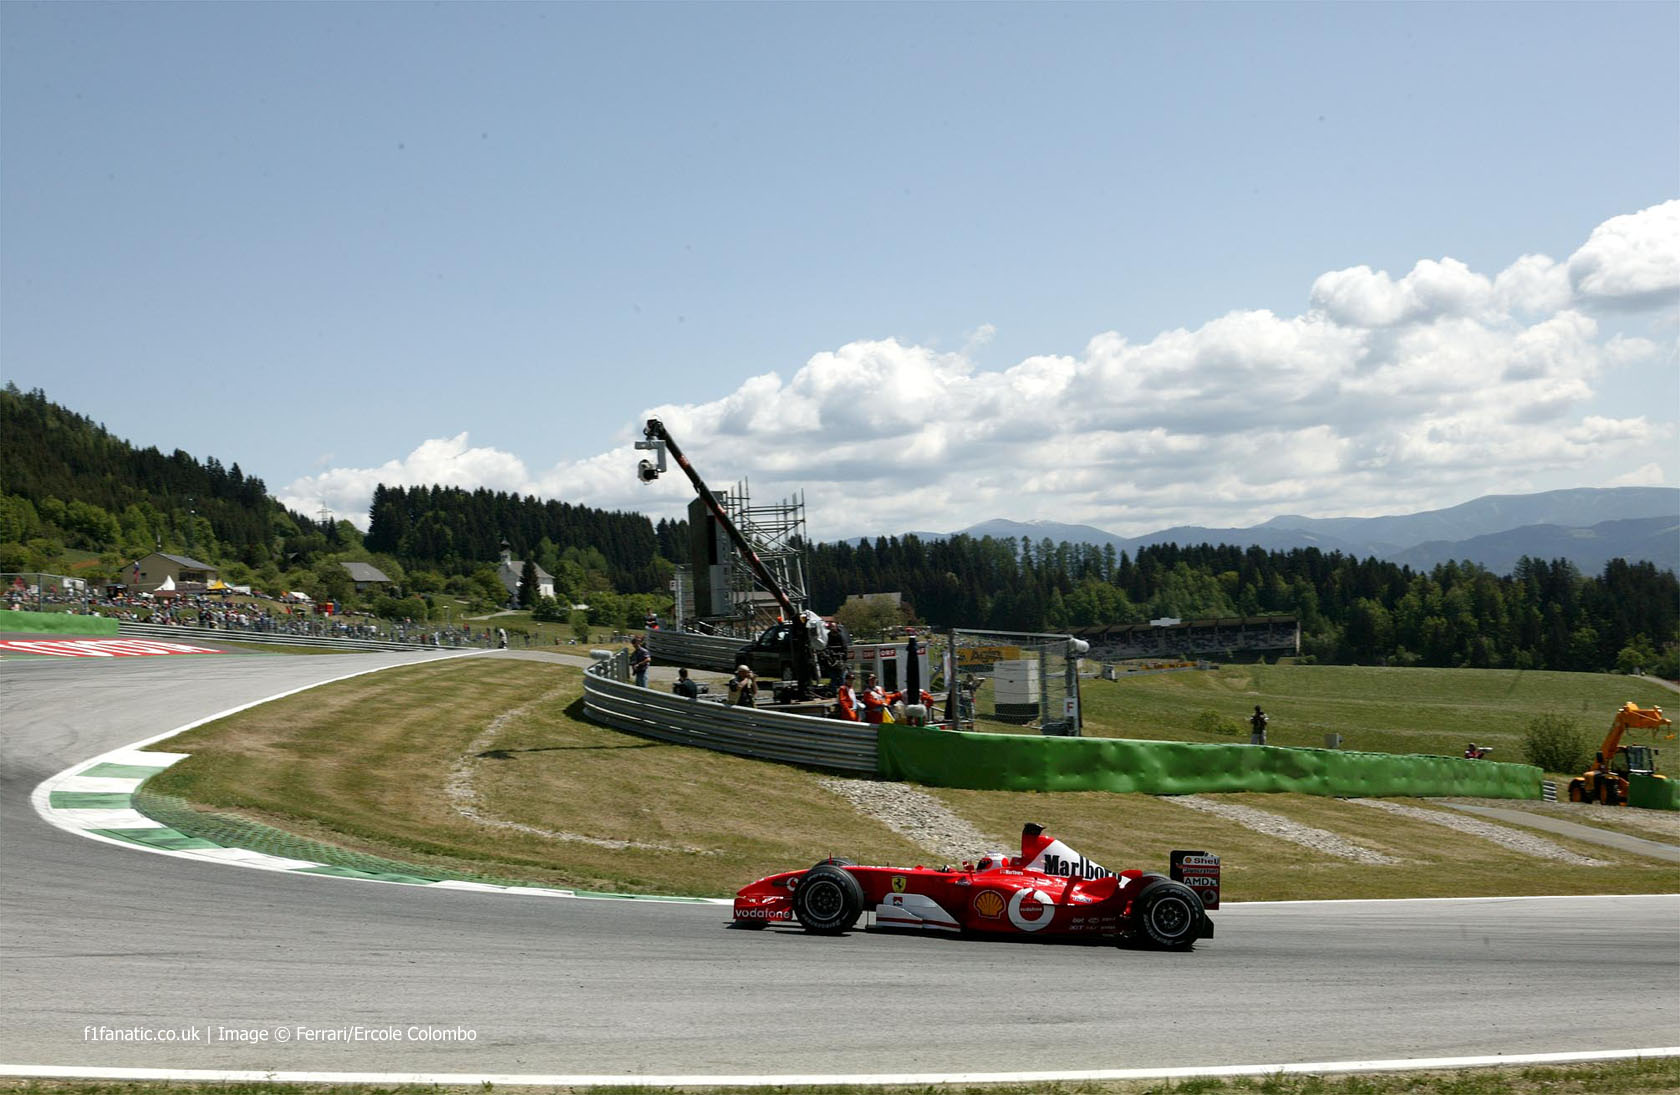 Rubens Barrichello, Ferrari, A1-Ring, 2002